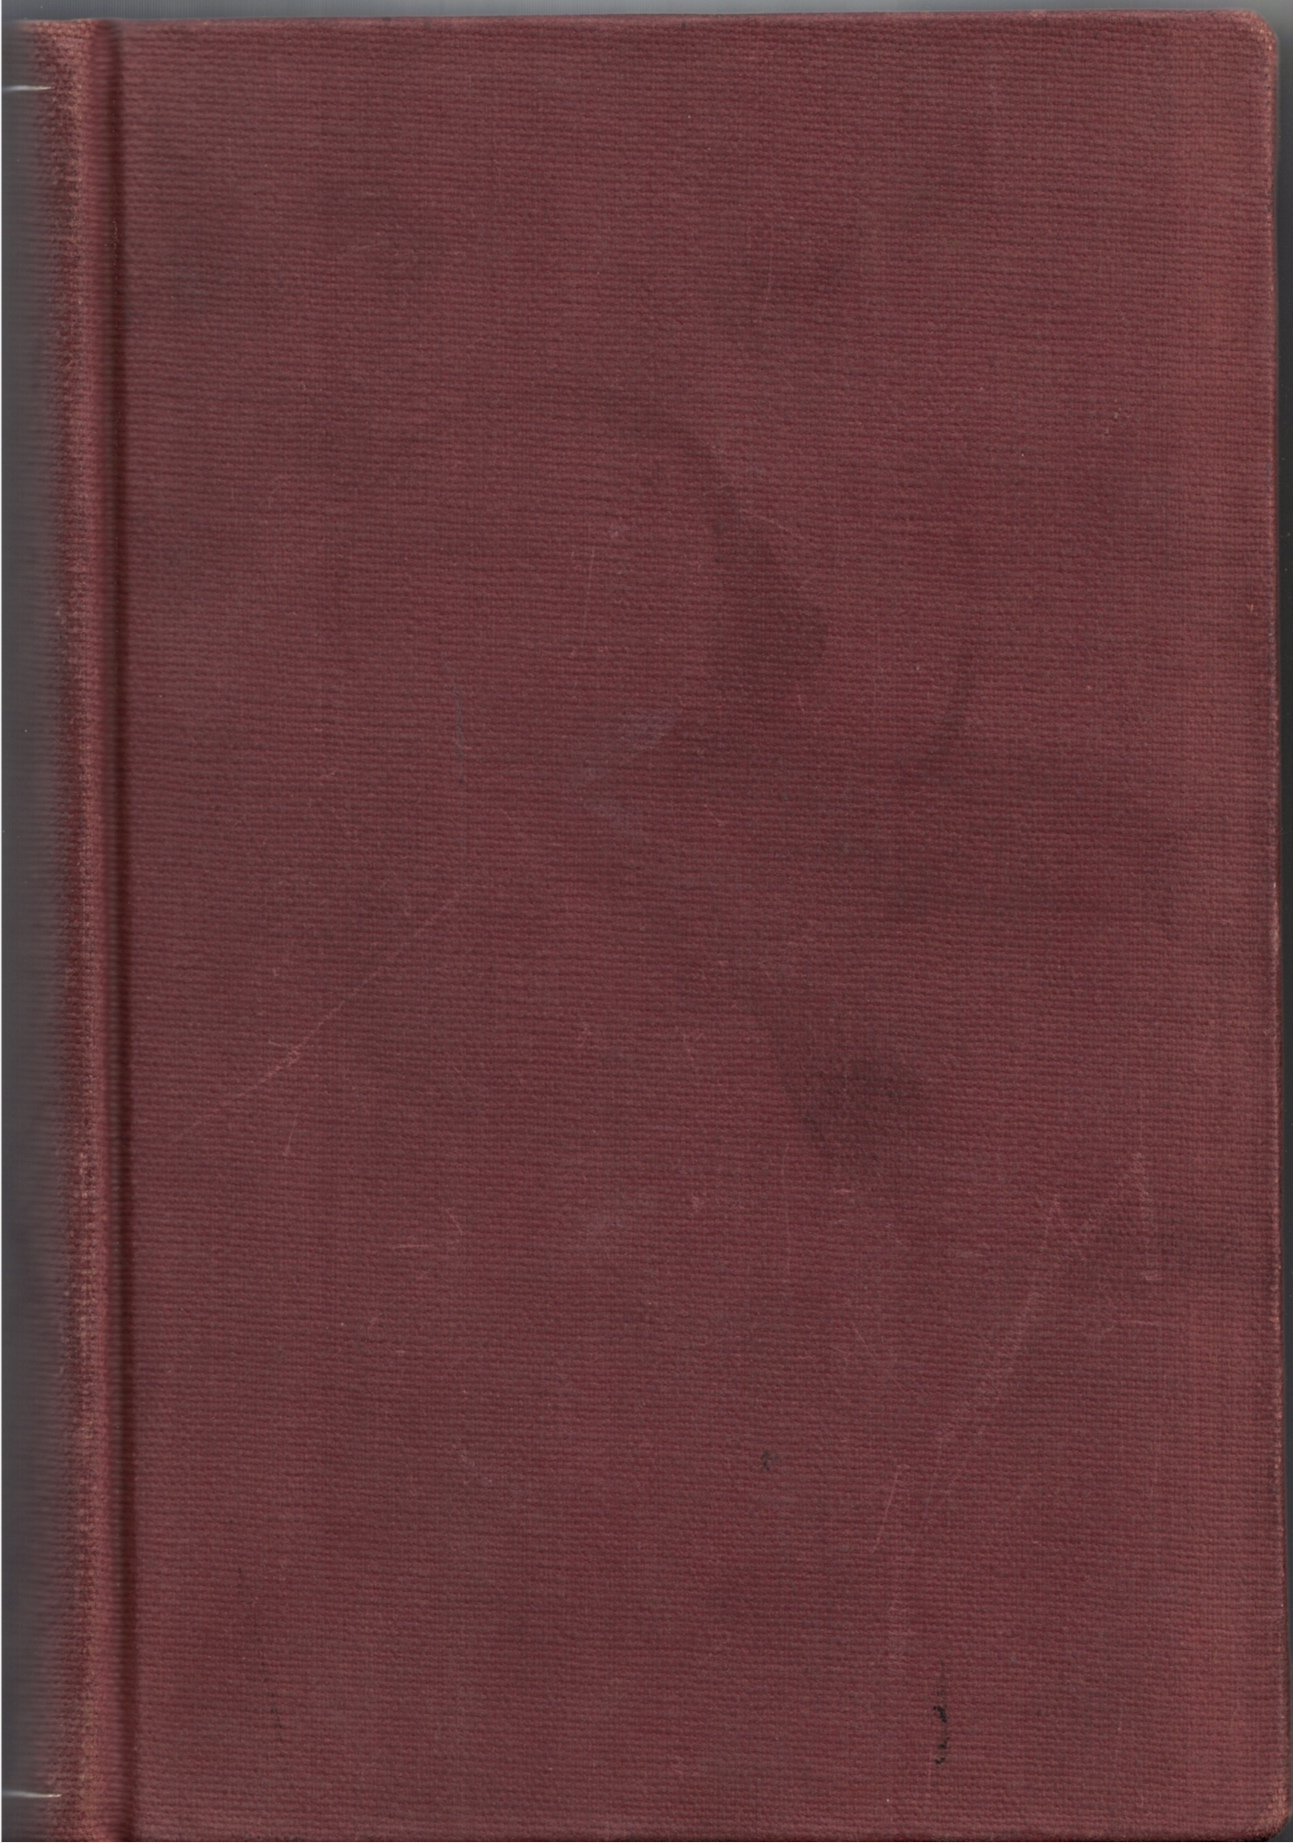 Image for Transactions of the American Institute of Mining and Metallurgical Engineers, Vol. LXIX; Containing Papers and Discussions Presented at the Meetings Held in New York and Canada in 1923